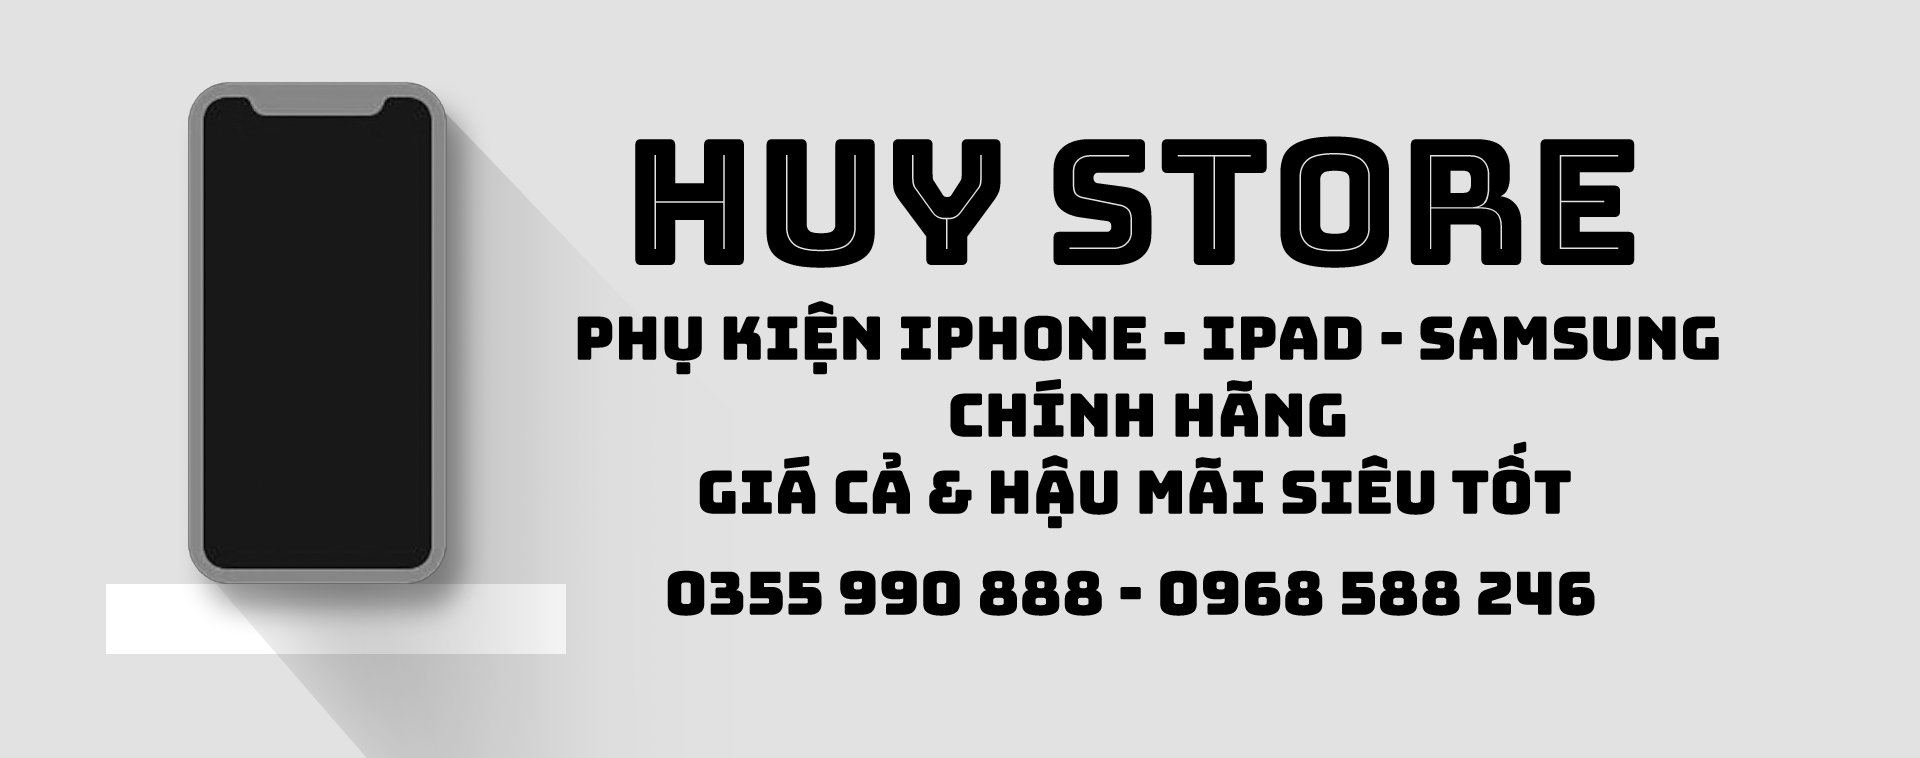 Banner Huy Store